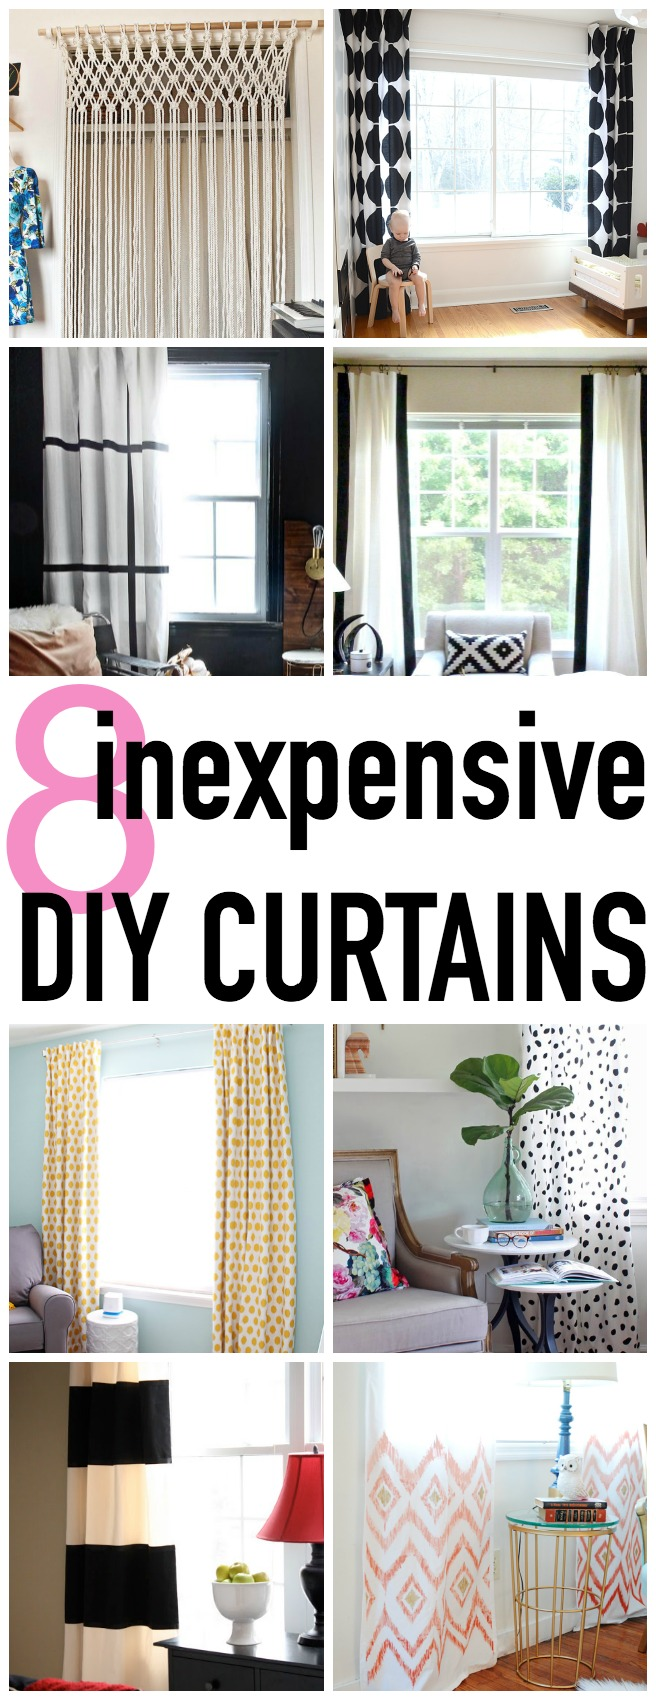 8 Inexpensive DIY Curtains